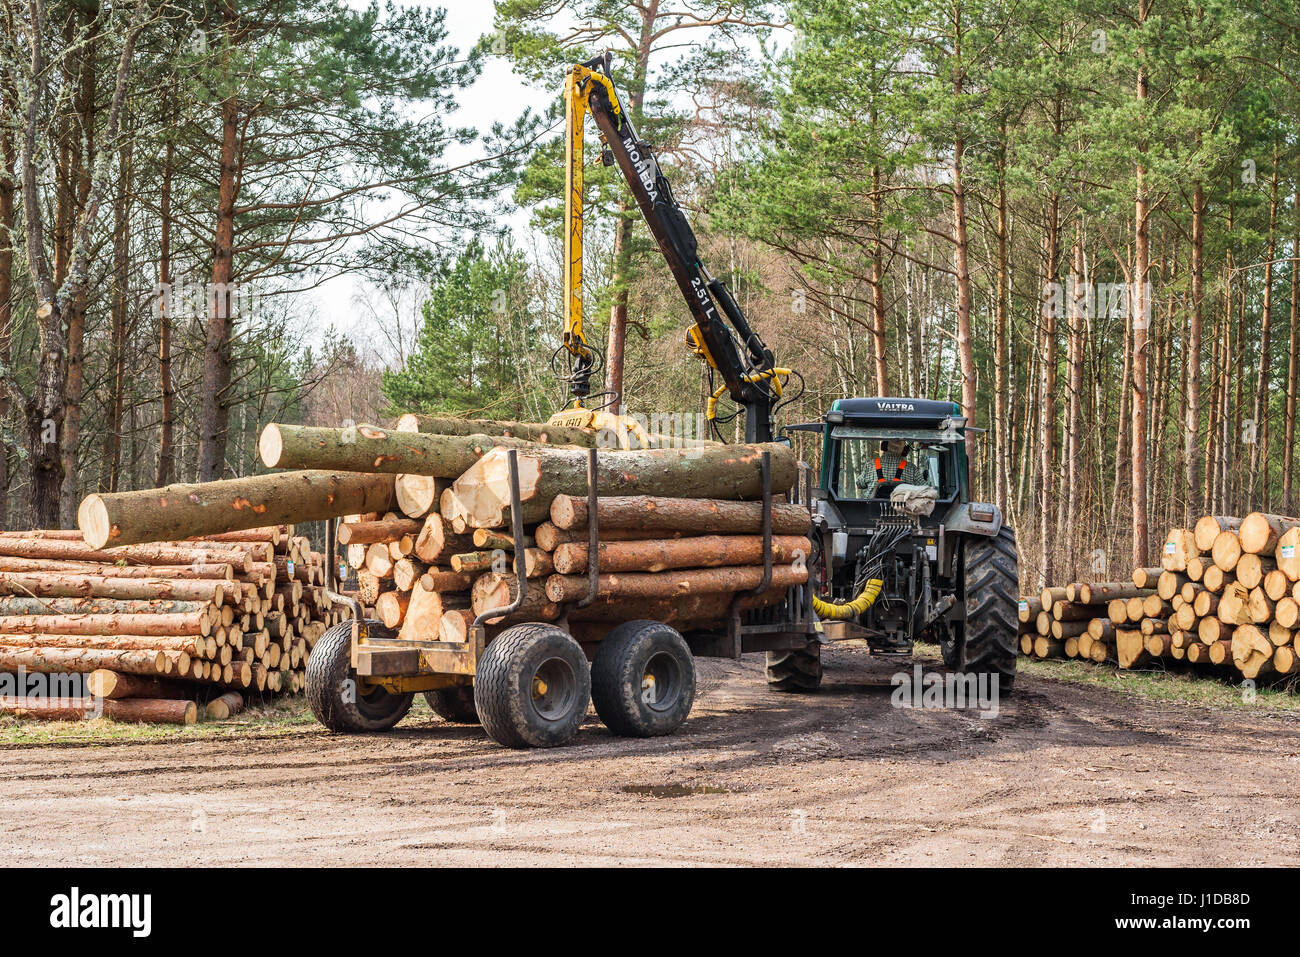 ronneby schweden 1 april 2017 dokumentation der arbeitstag im wald traktor mit holz. Black Bedroom Furniture Sets. Home Design Ideas